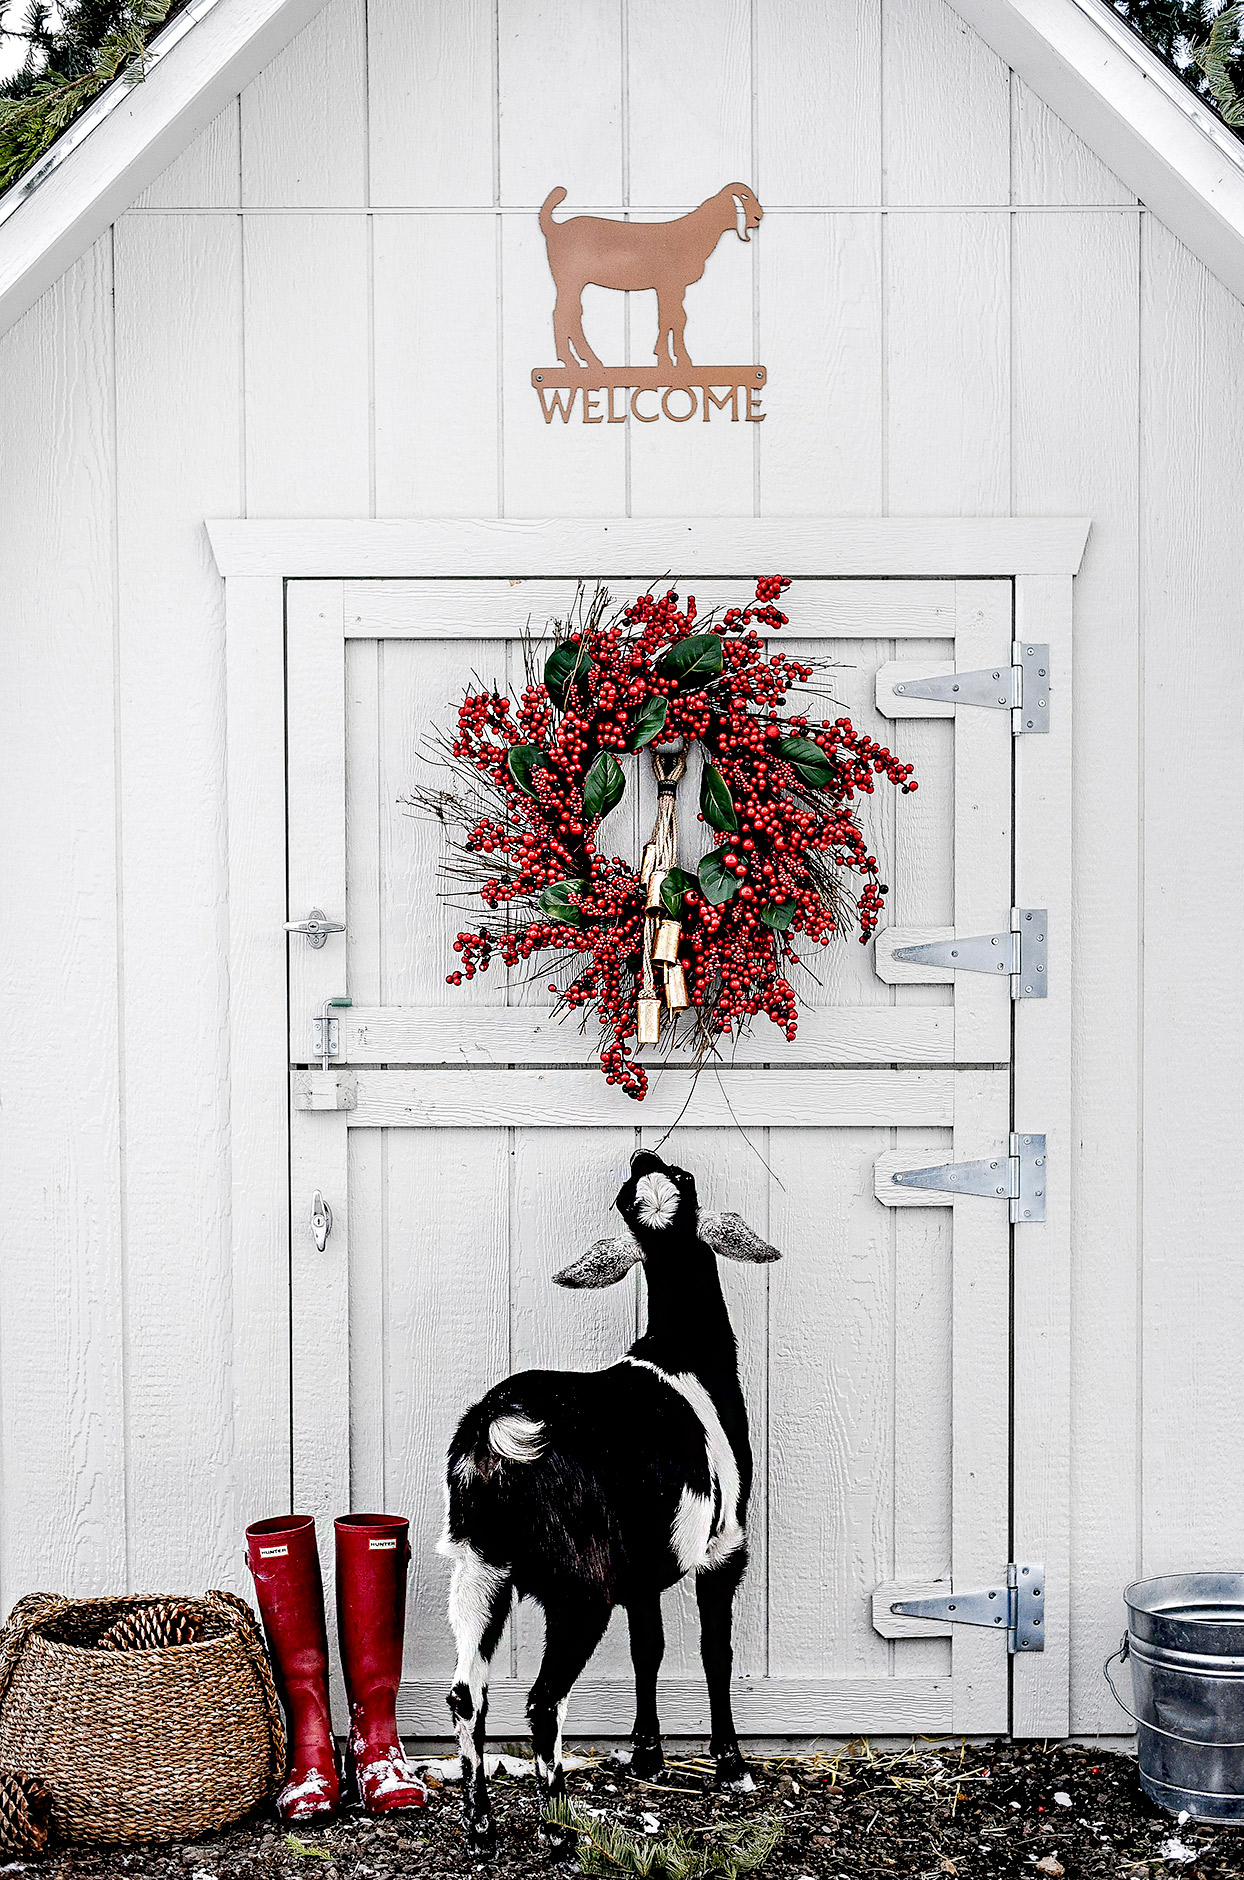 Goat in front of white shed looking at Christmas wreath